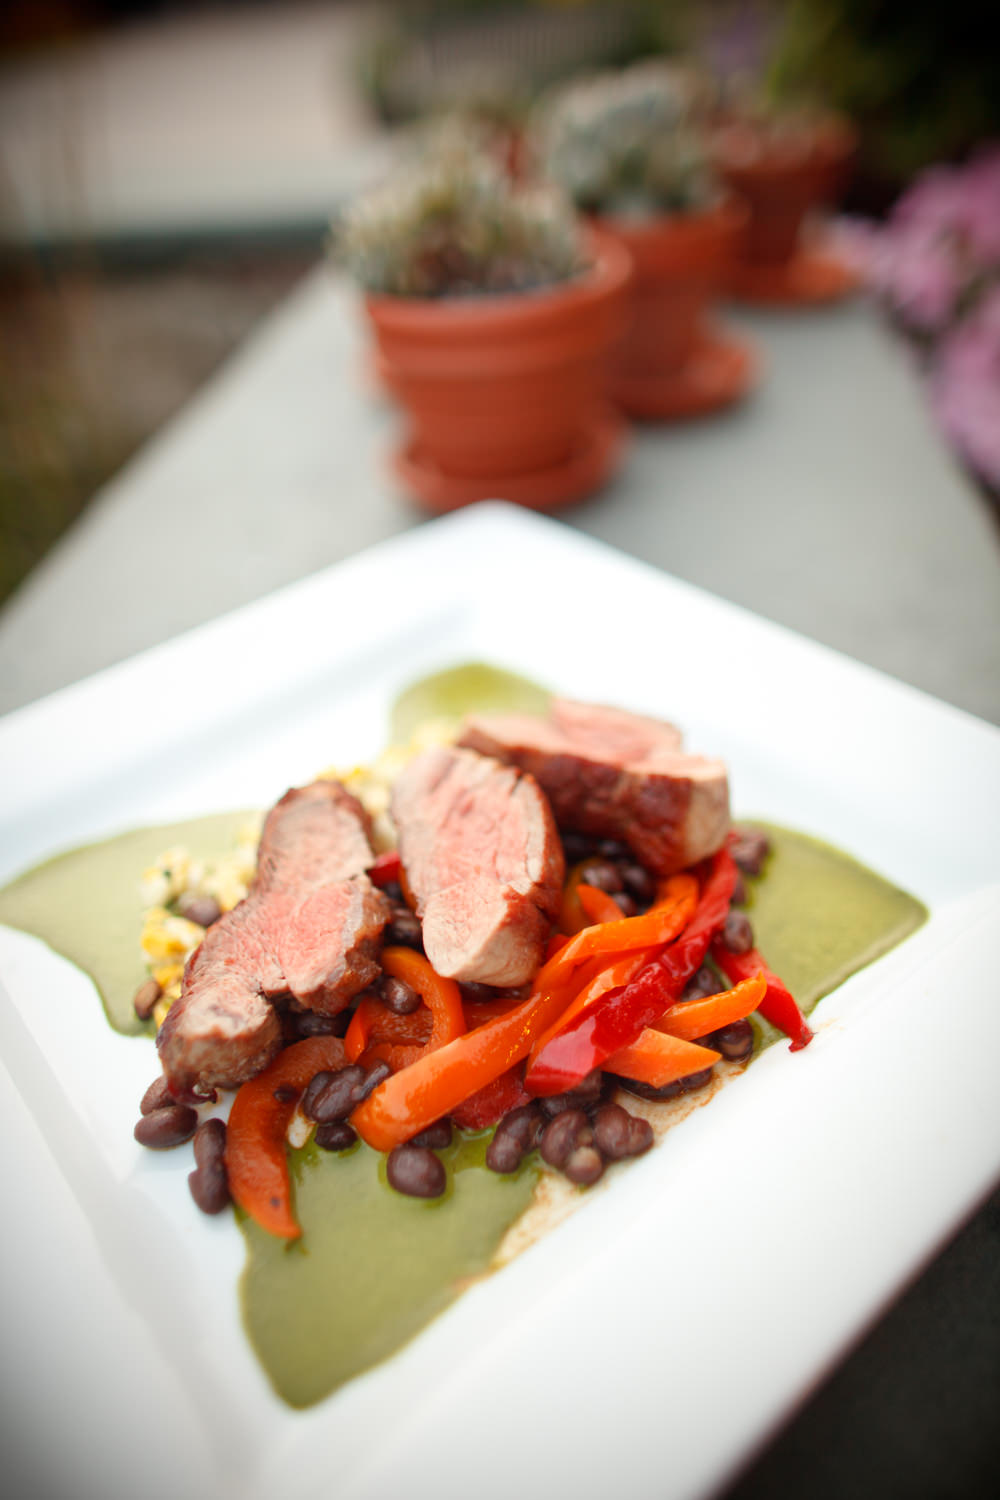 Seared filet mignon on top of a heap of black beans and red pepper strips from the Timbers Restaurant at the Sugarbush Resort in Vermont photographed by food photographer Stina Booth